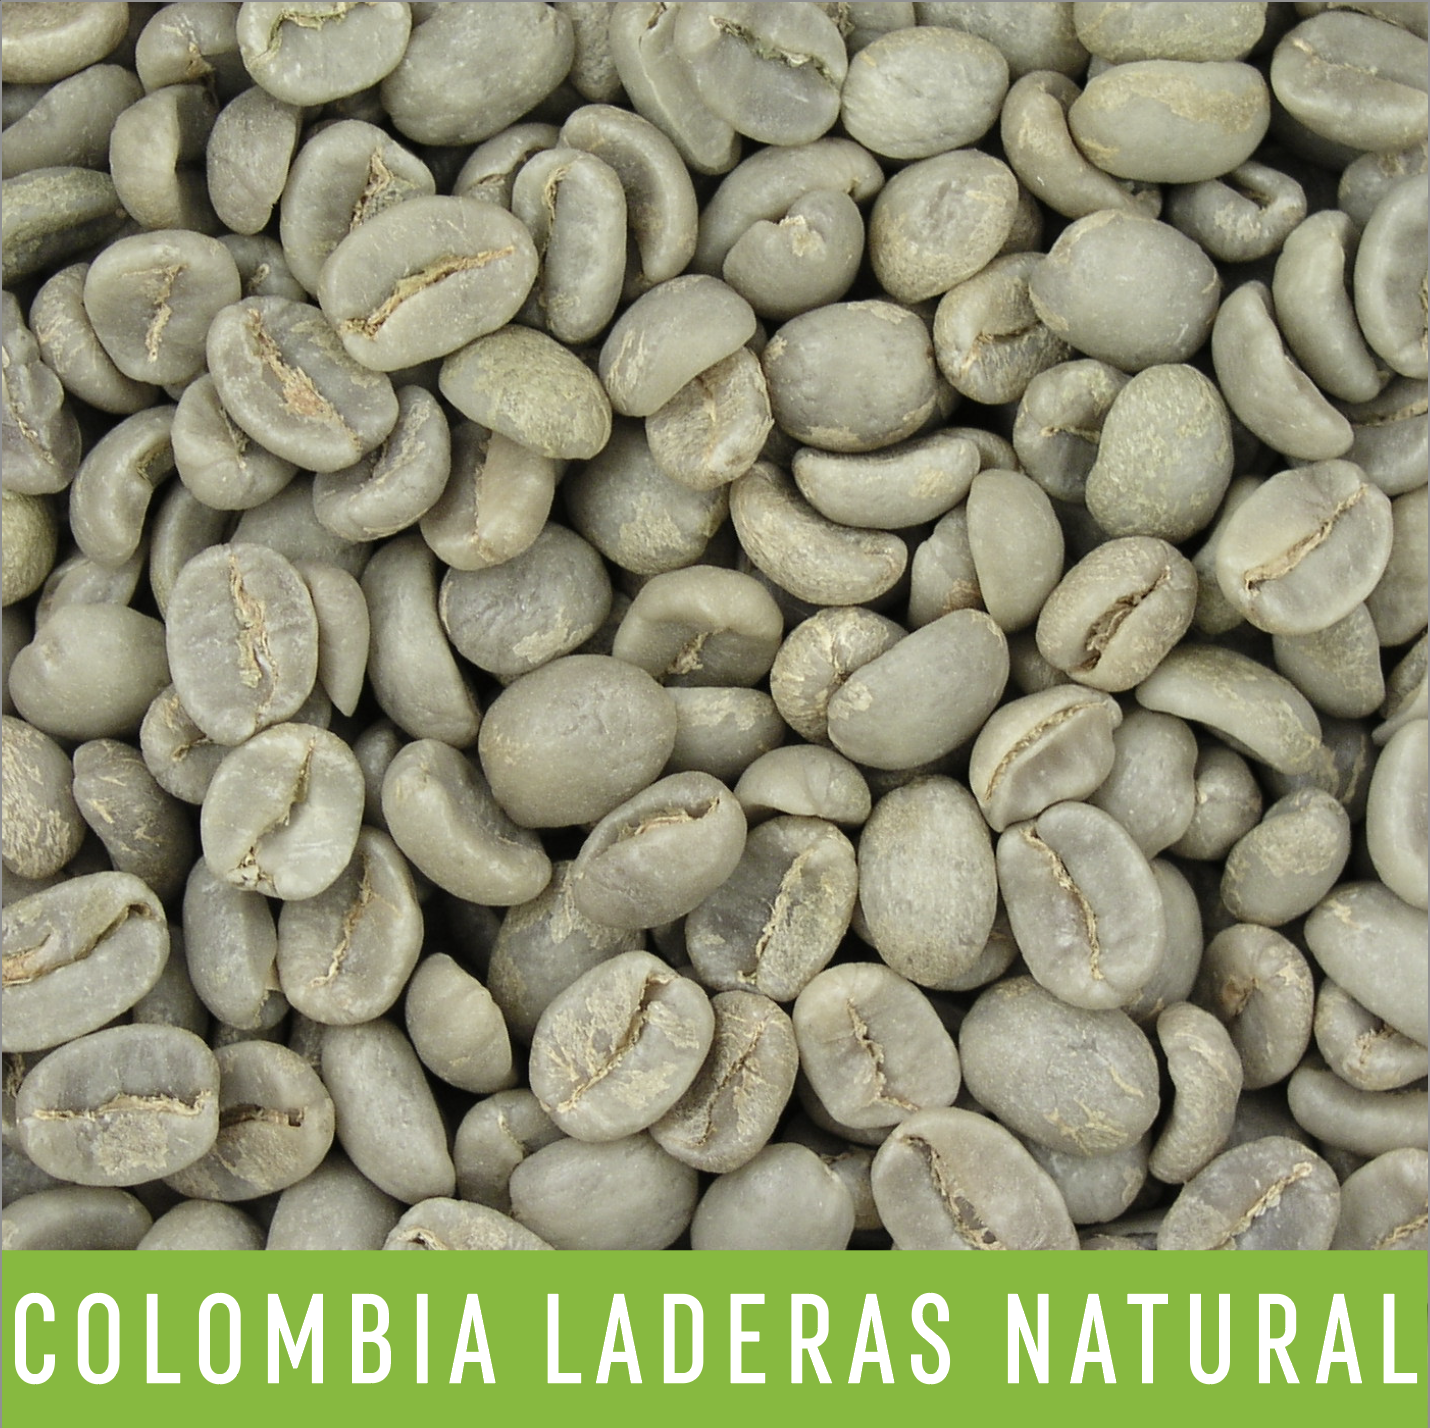 Green Coffee Beans: Colombia Laderas Natural - 1 LB